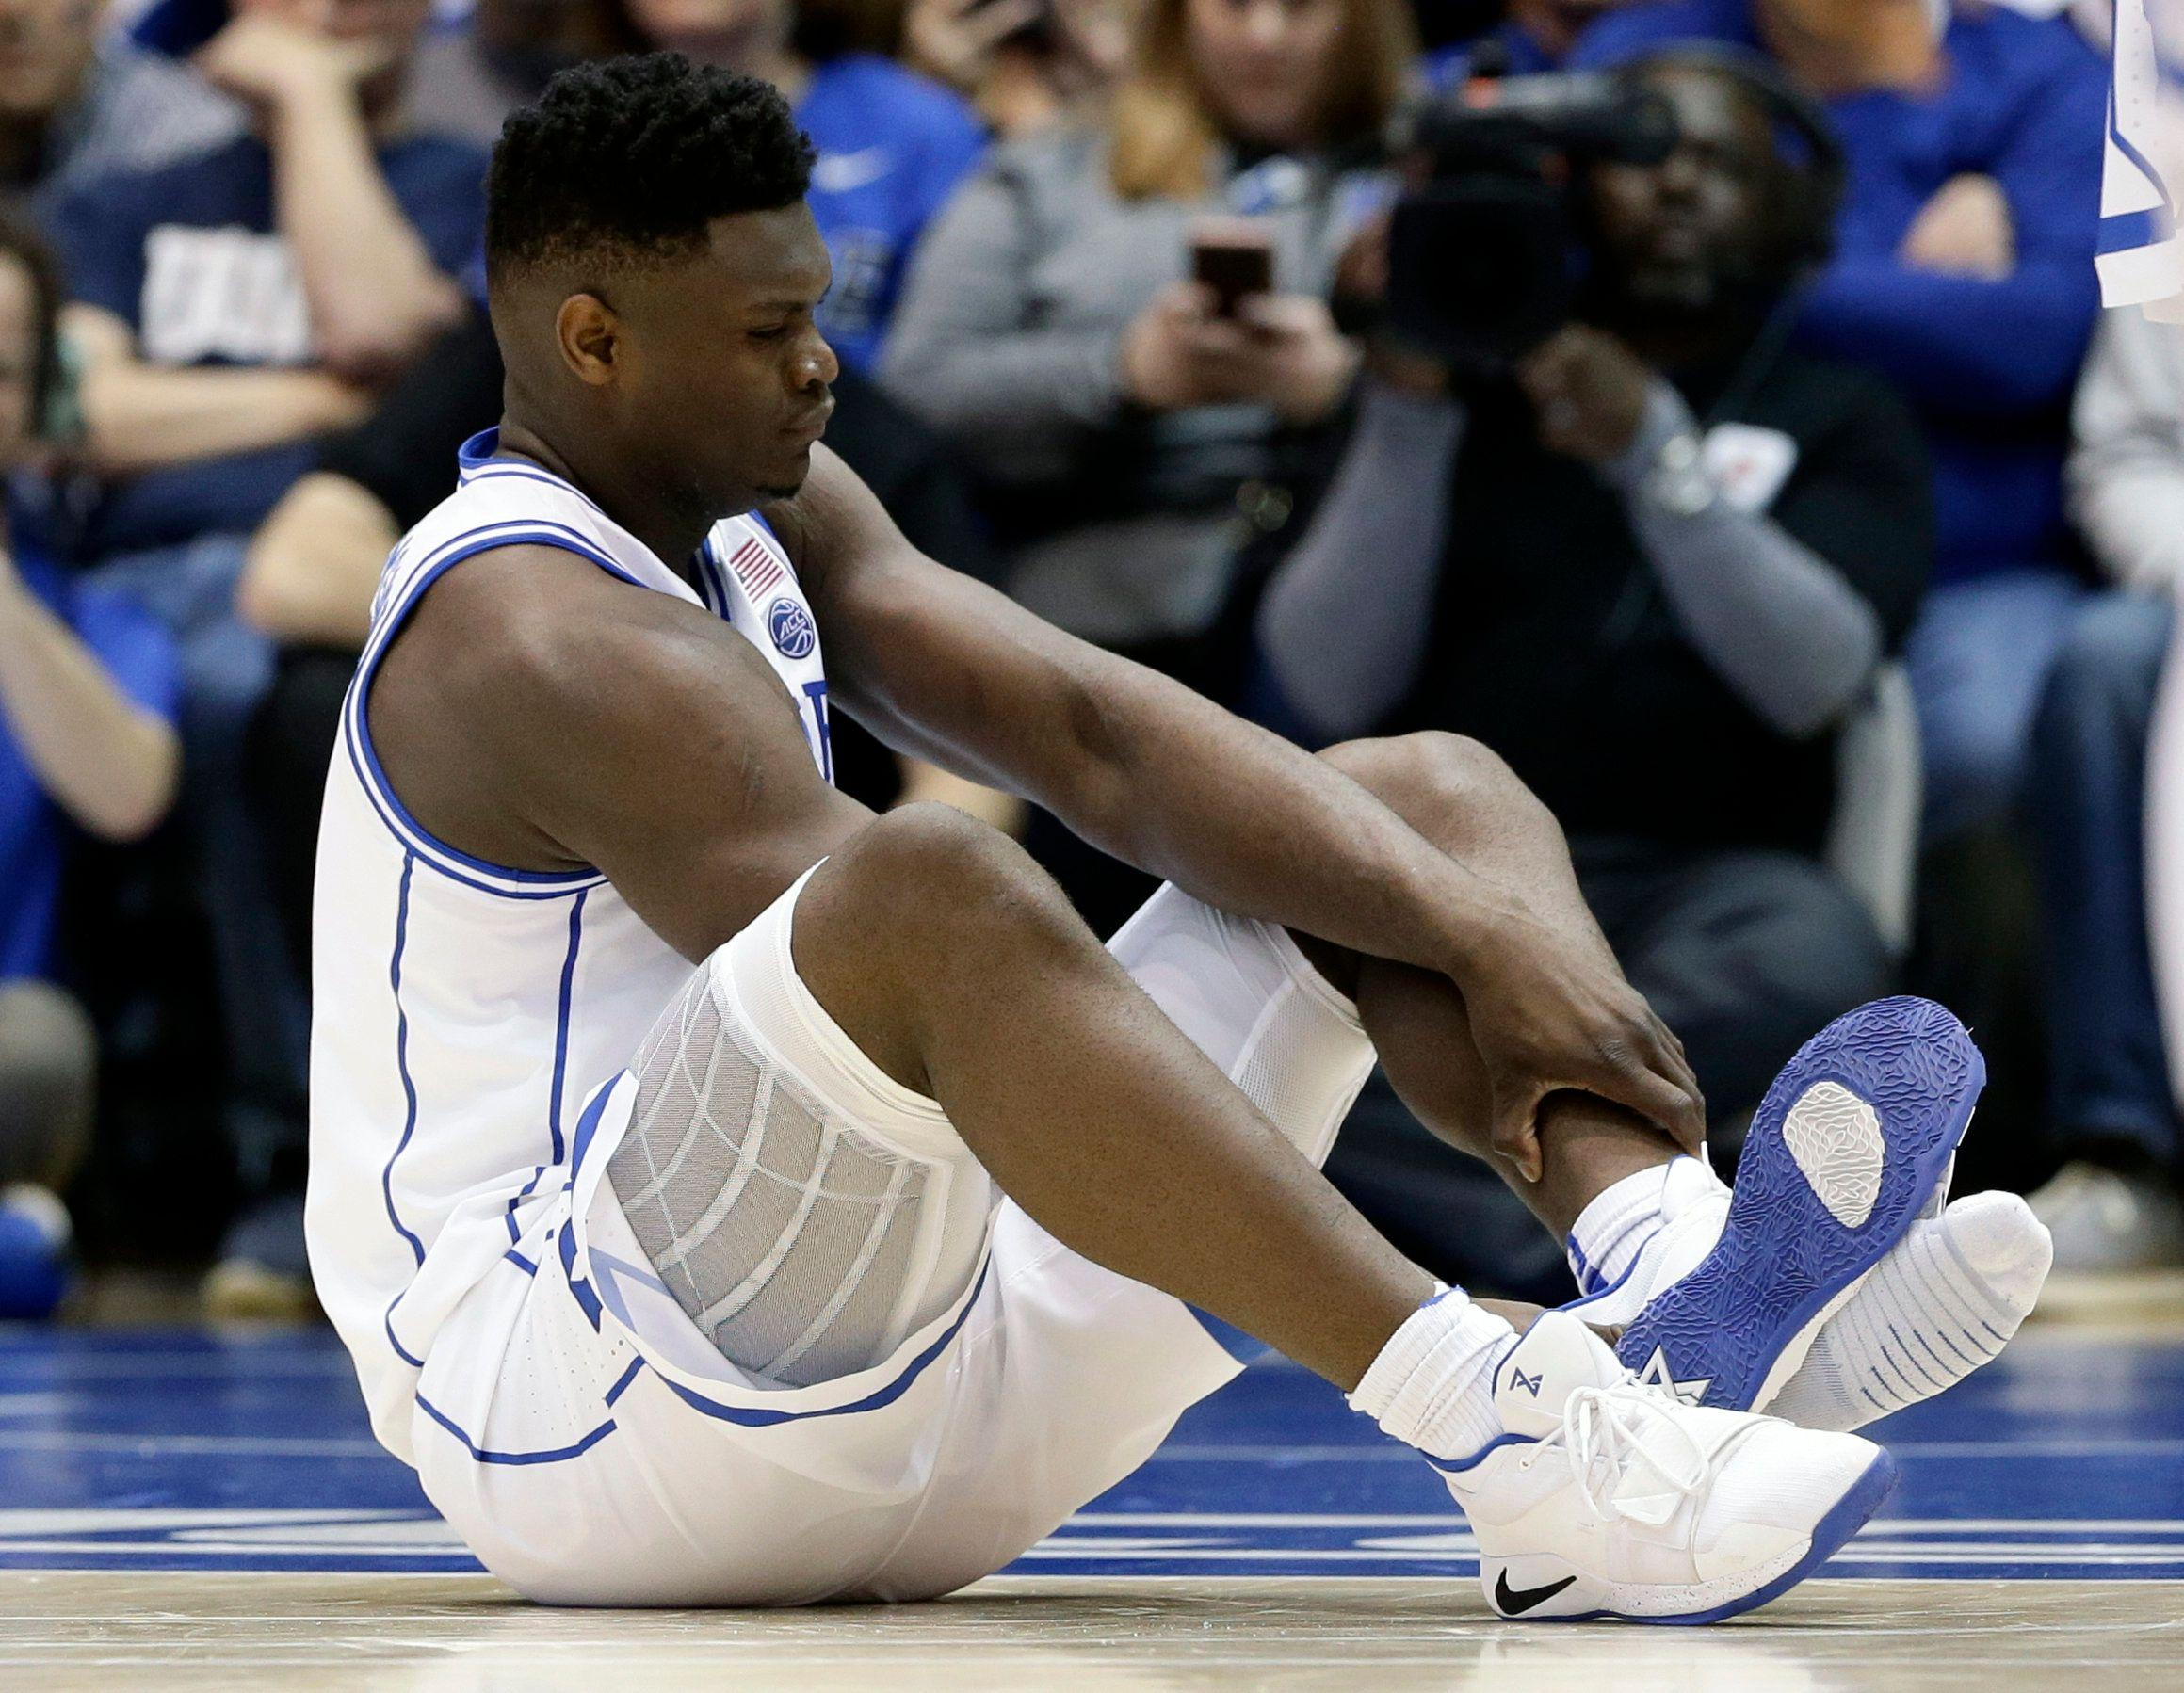 561a38b1b546 Nike is trading like Zion Williamson s shoe never exploded